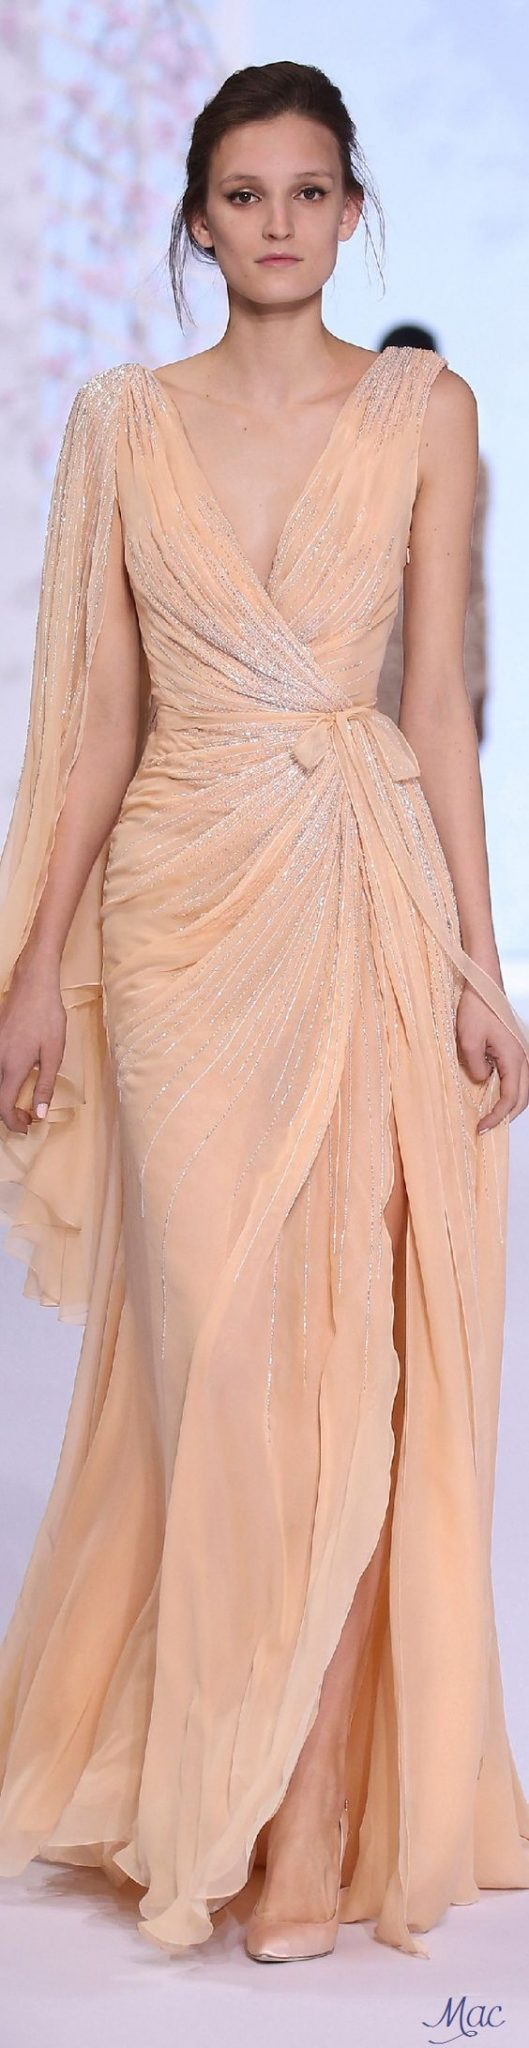 10 More Gorgeous, Grecian Inspired Wedding Gowns | Wedding Attire ...